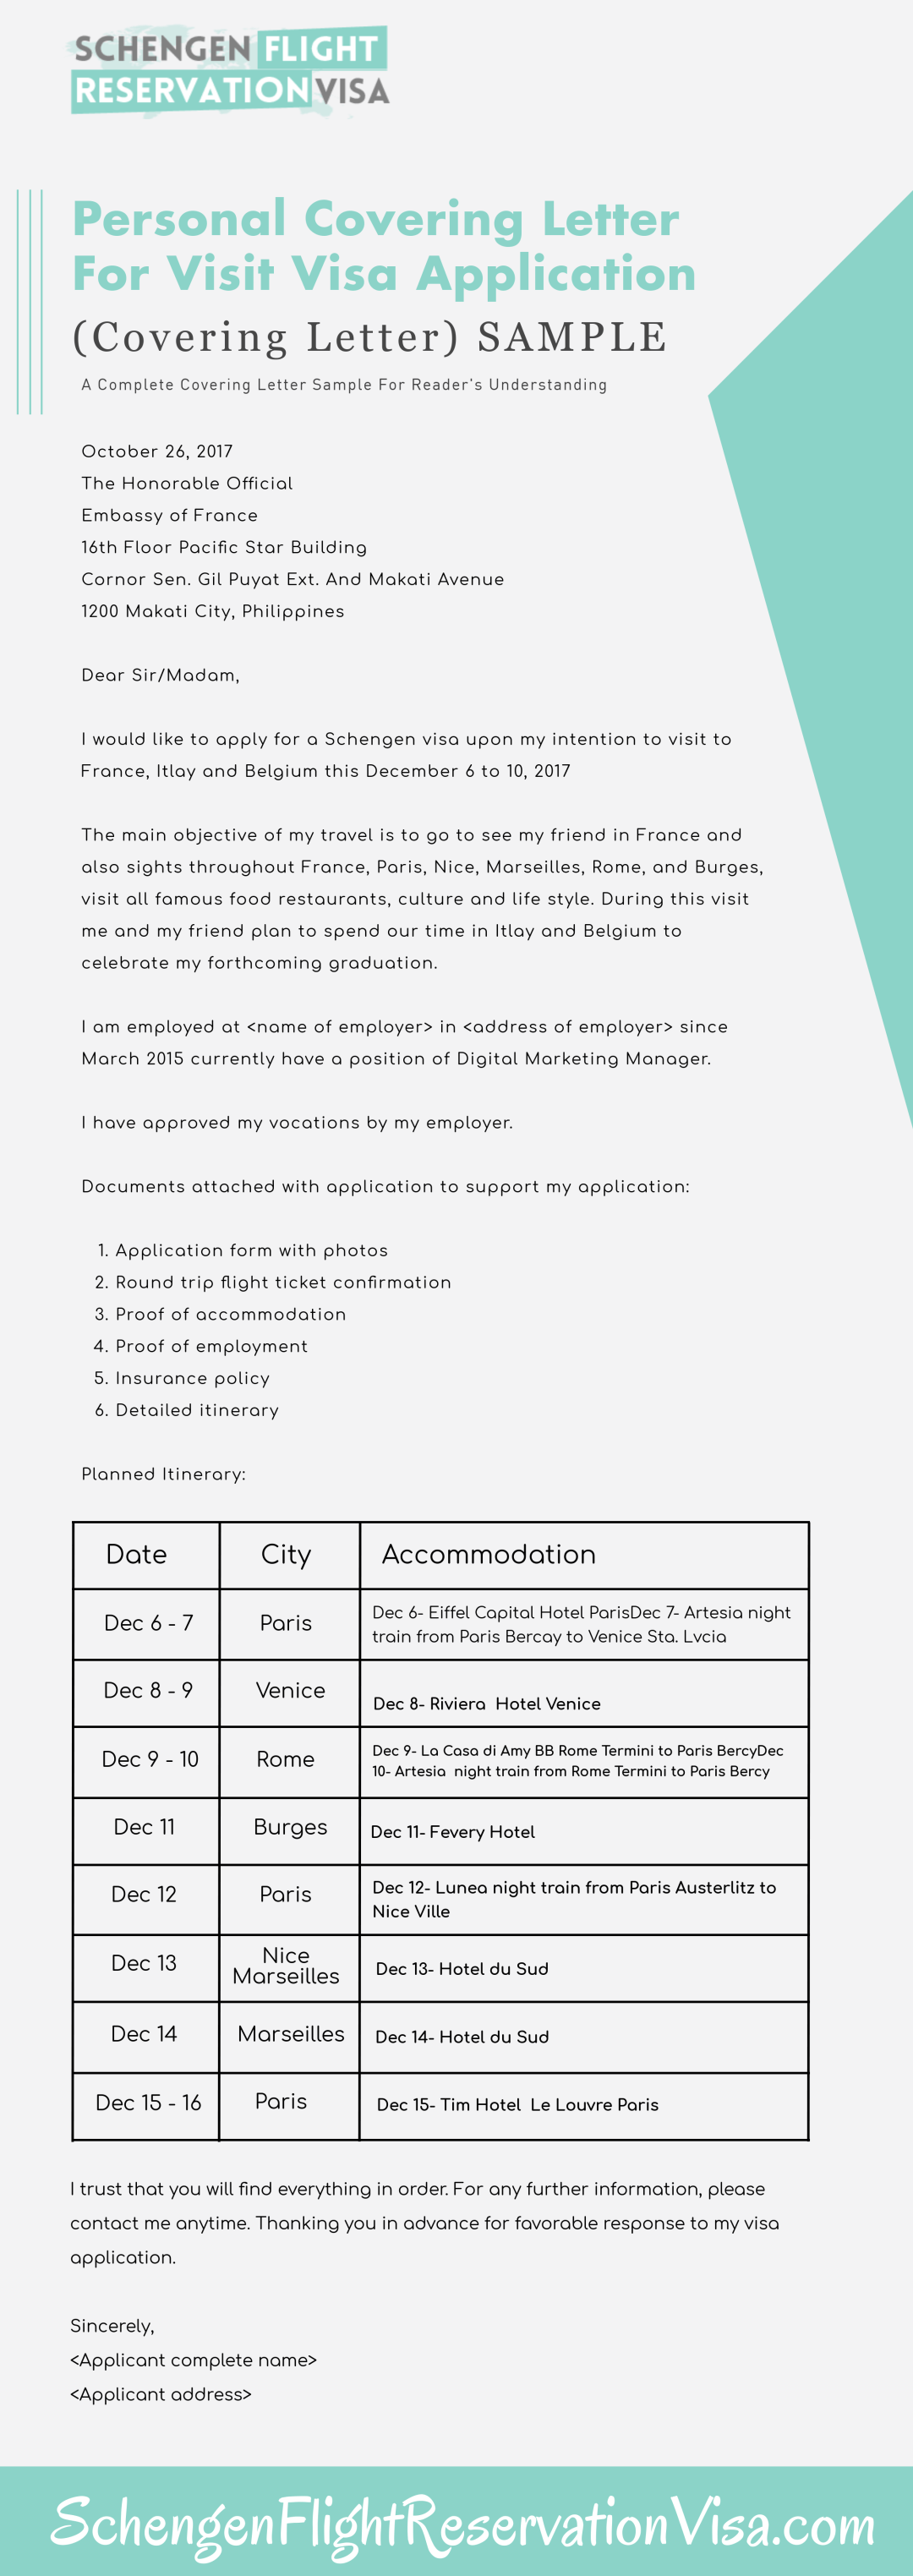 personal covering letter for visit visa application - Sample Of Cover Letter For Visa Application